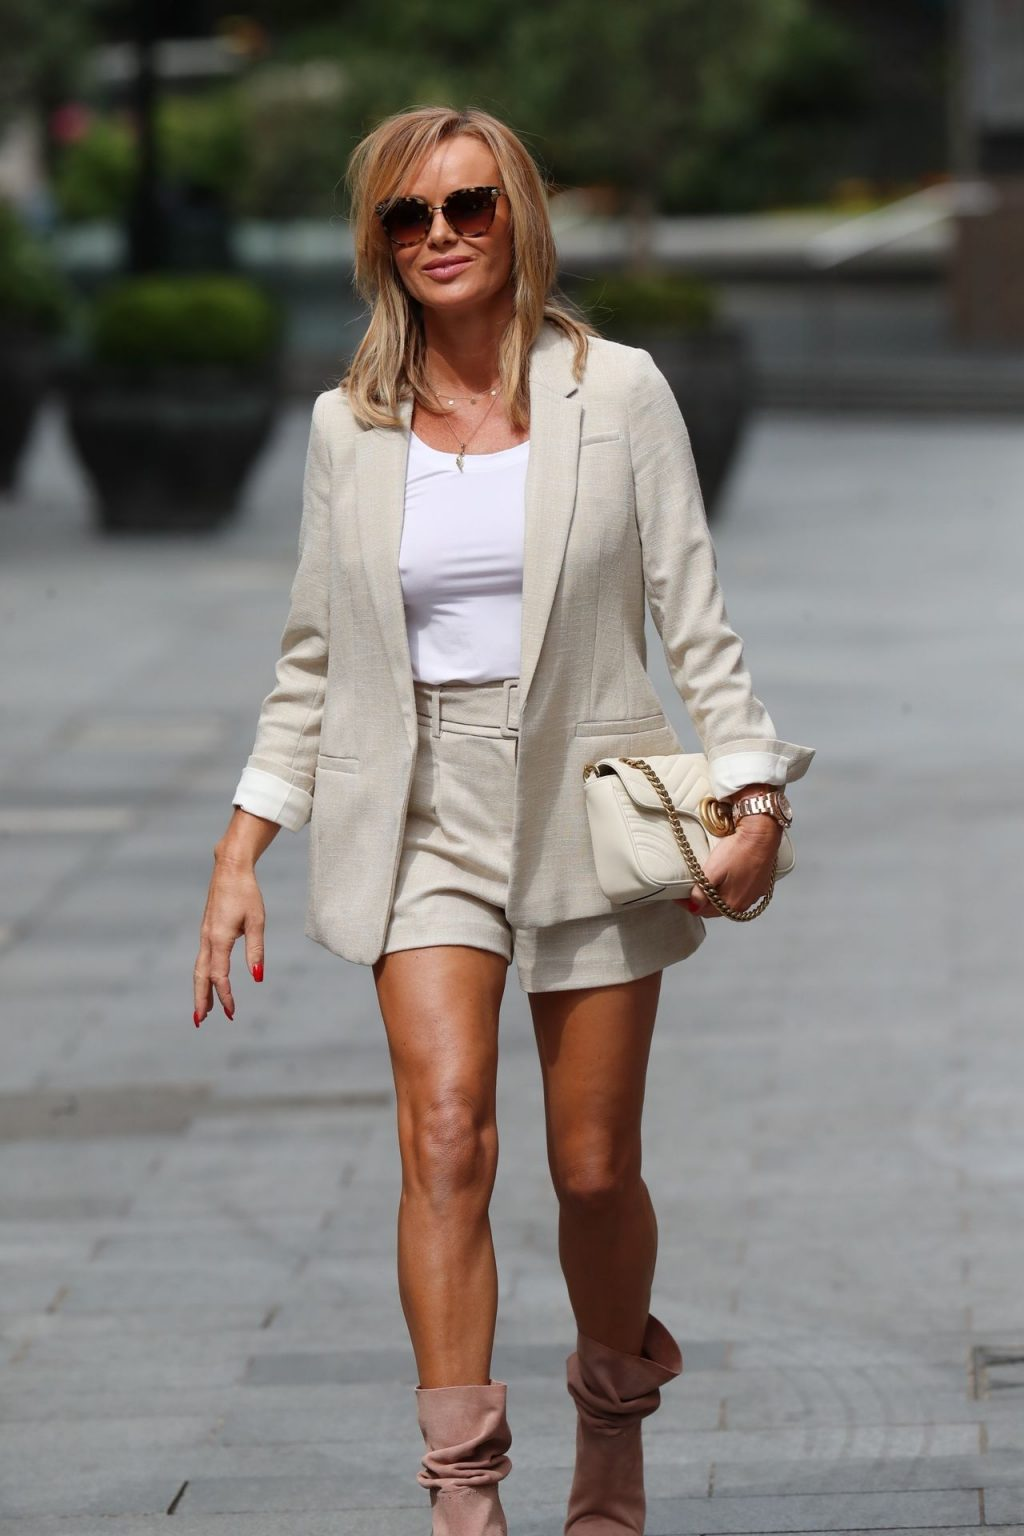 Braless Amanda Holden Is Spotted at Global Radio (83 Photos)